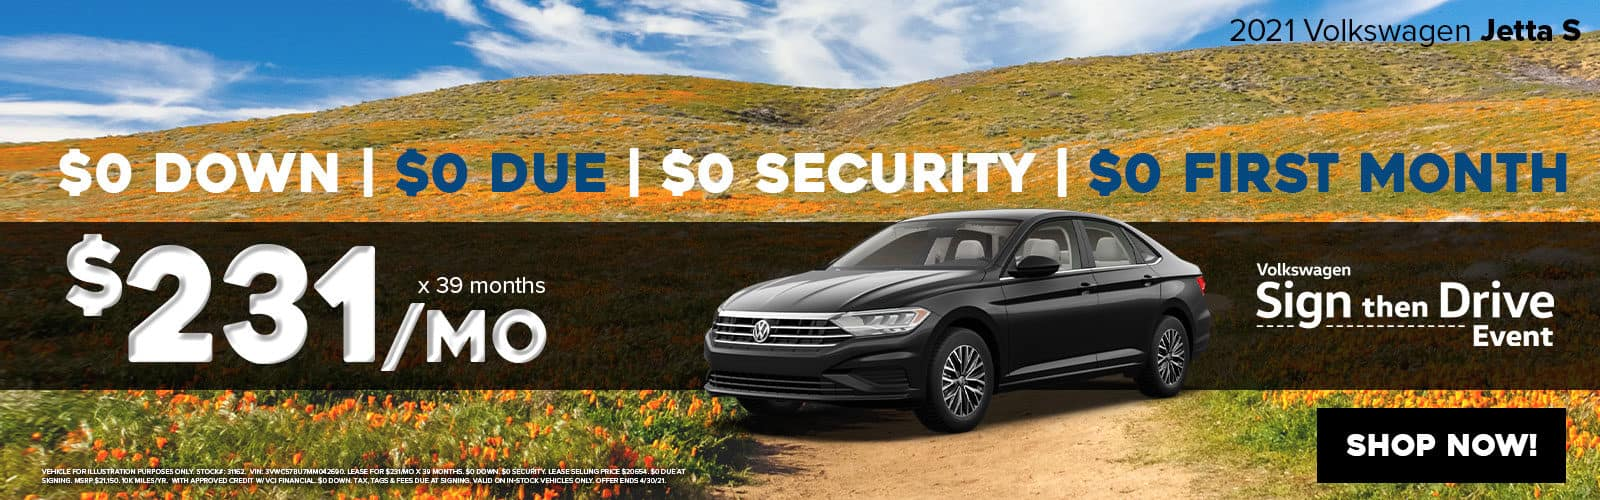 4_21_Wyoming_Valley_VW_Web_Banners_V2-2021-Jetta